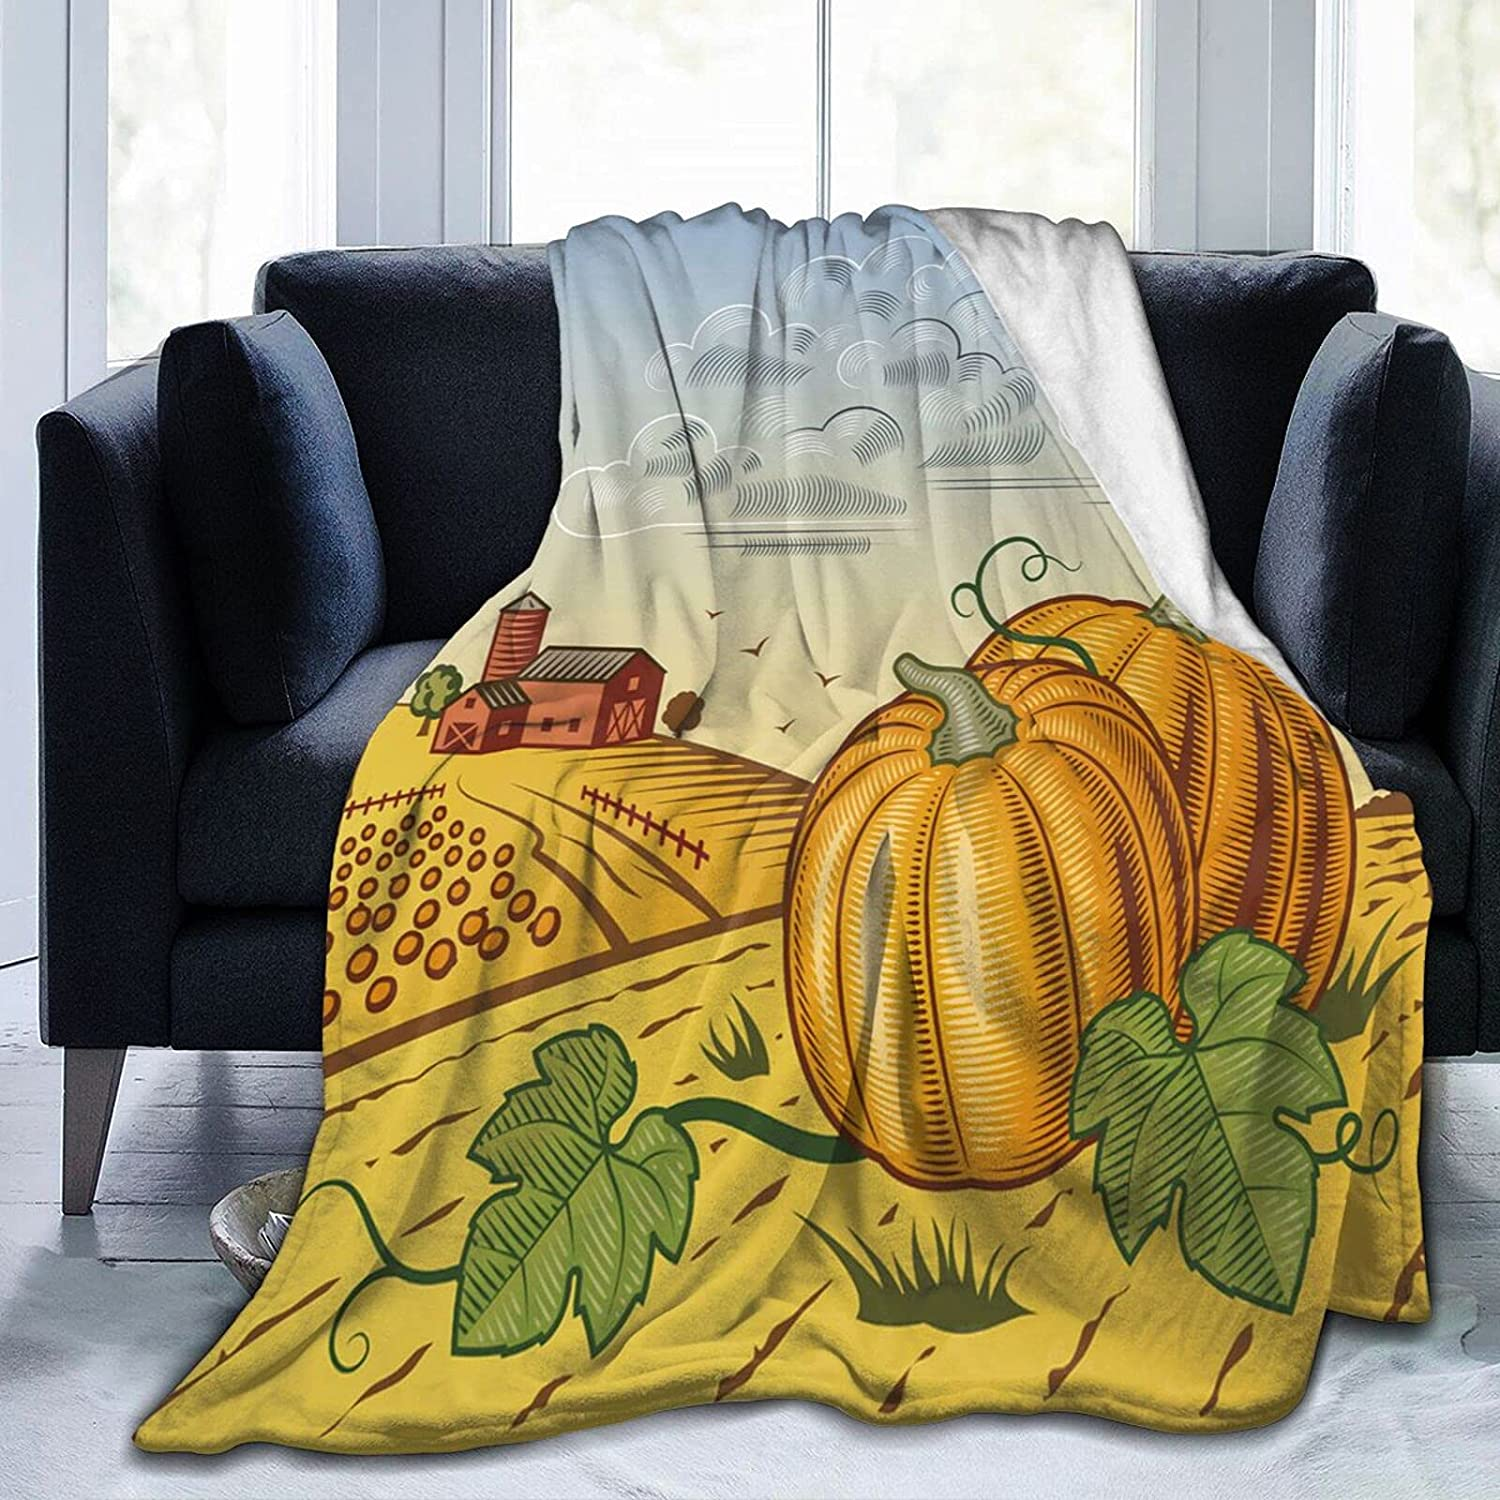 AmaUncle Landscape with Same day shipping Pumpkins Flannel Thro Bed Blanket Mesa Mall Sherpa